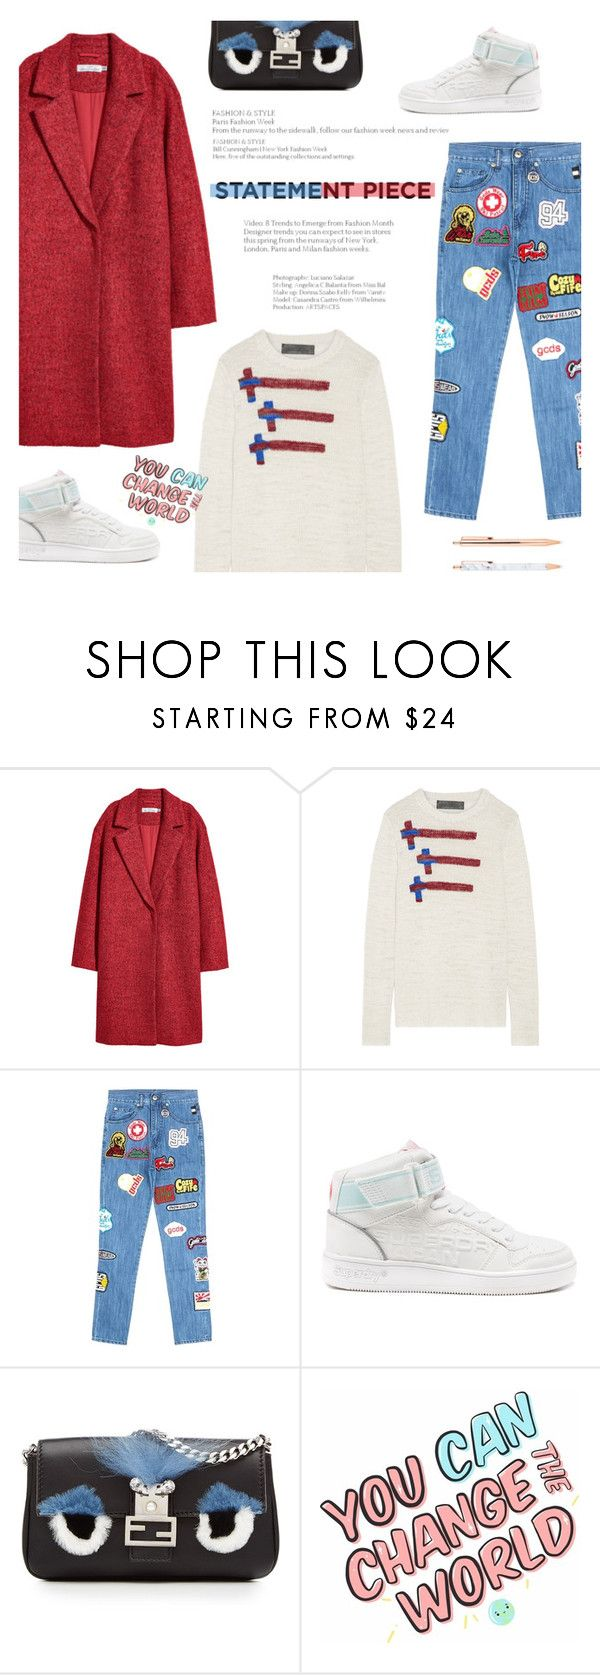 """Untitled #347"" by riennise on Polyvore featuring The Elder Statesman, GCDS, Superdry, Fendi and statementcoats"